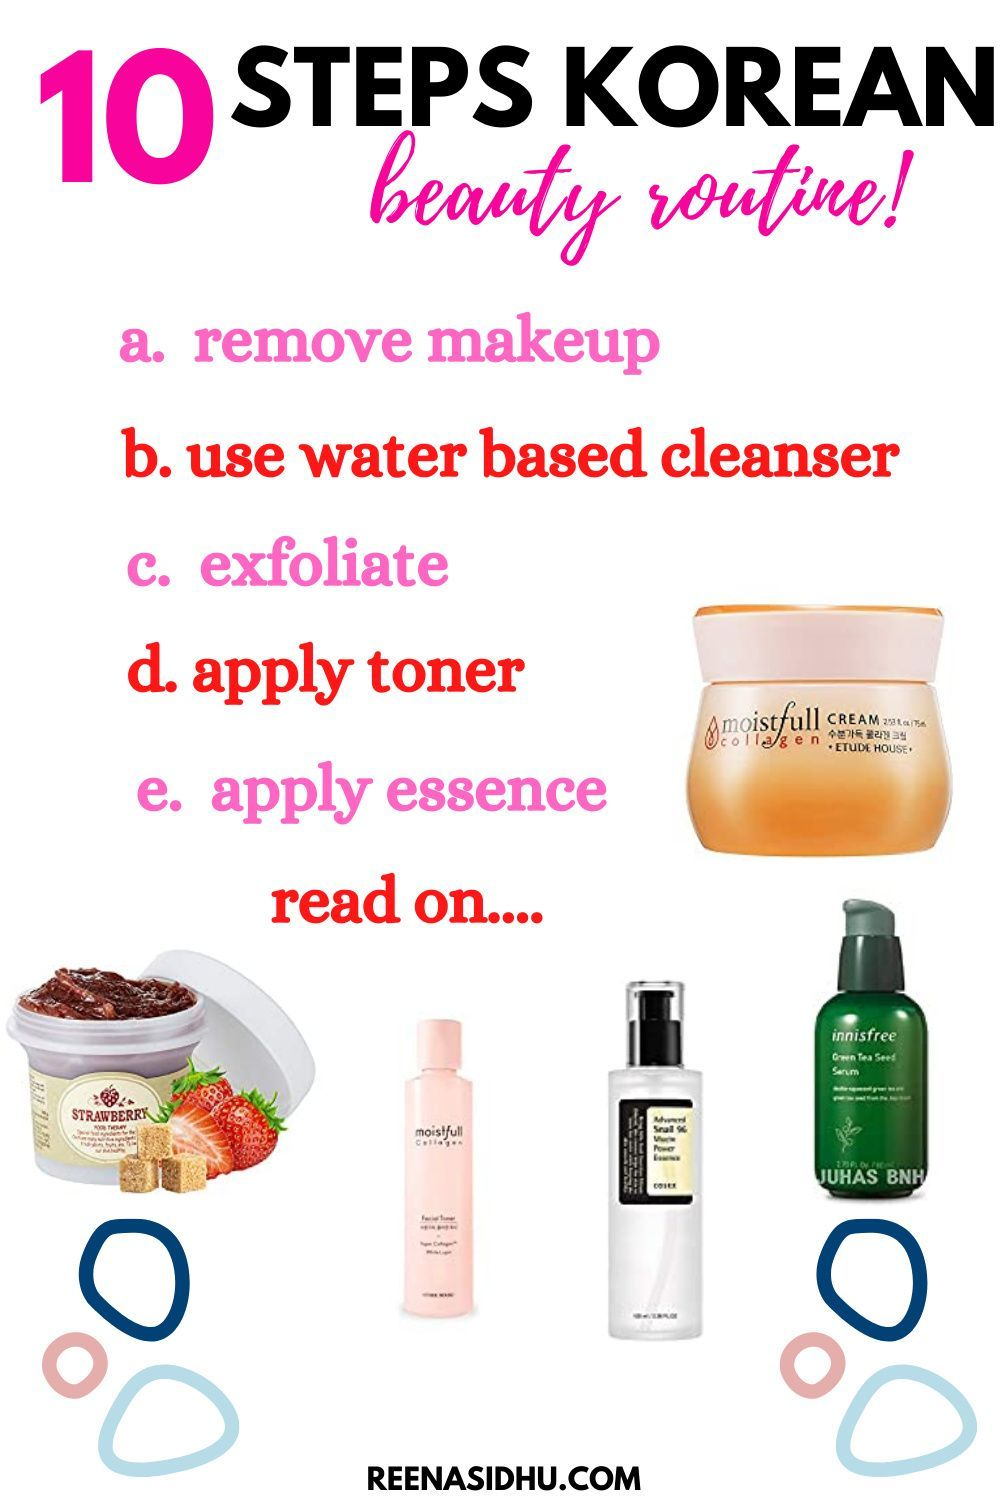 10 Steps Korean Beauty Routine. The ultimate 10 step system to achieve beautiful skin. #korean beauty tips #korean beauty tips skin care #korean beauty tips skincare routine #korean beauty